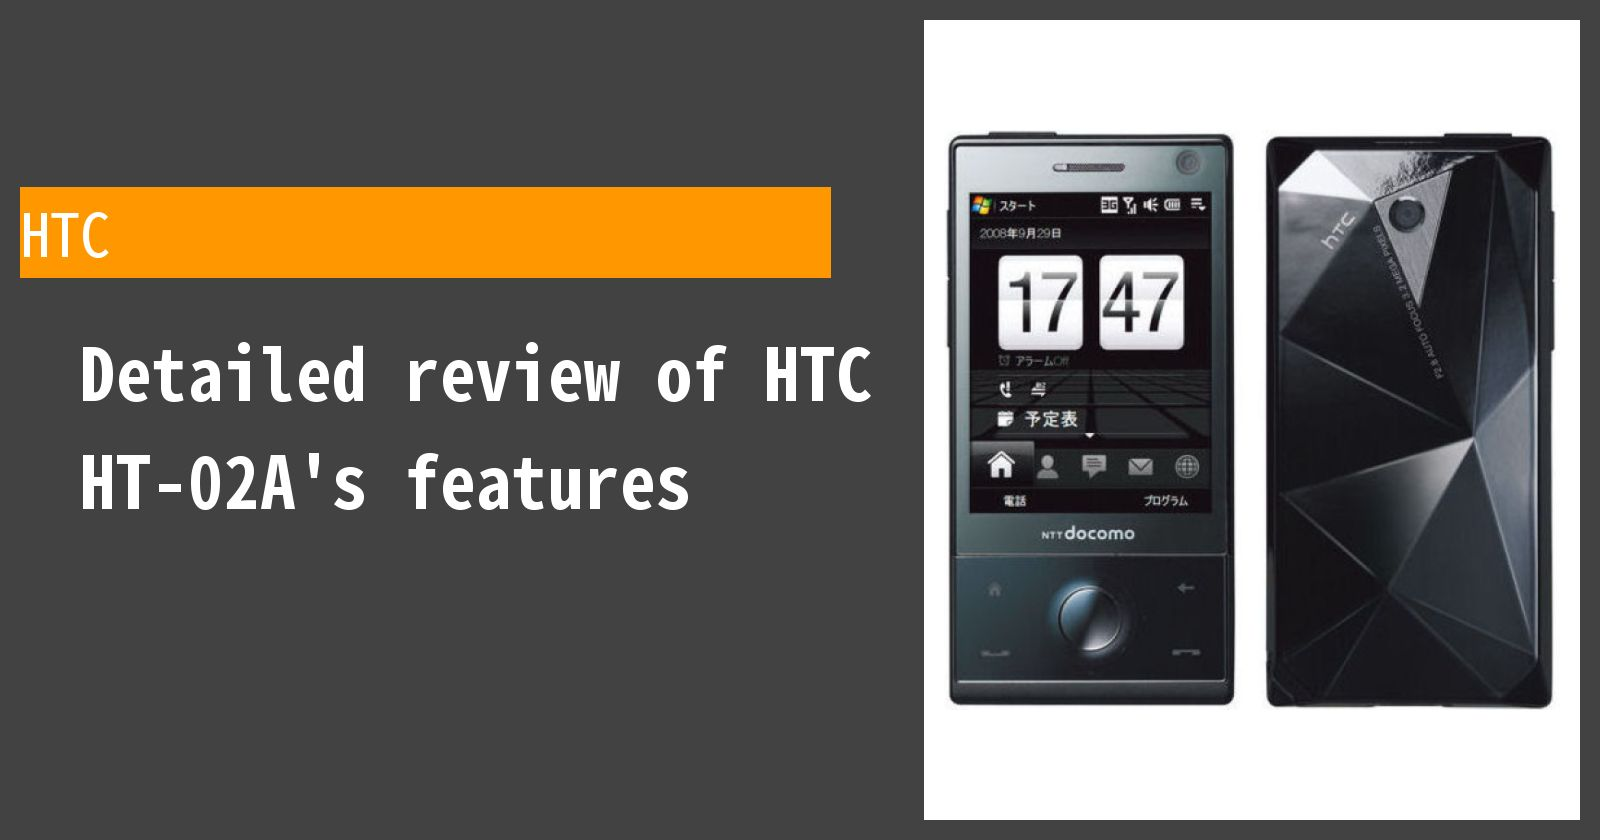 Detailed review of HT-02A docomo's features